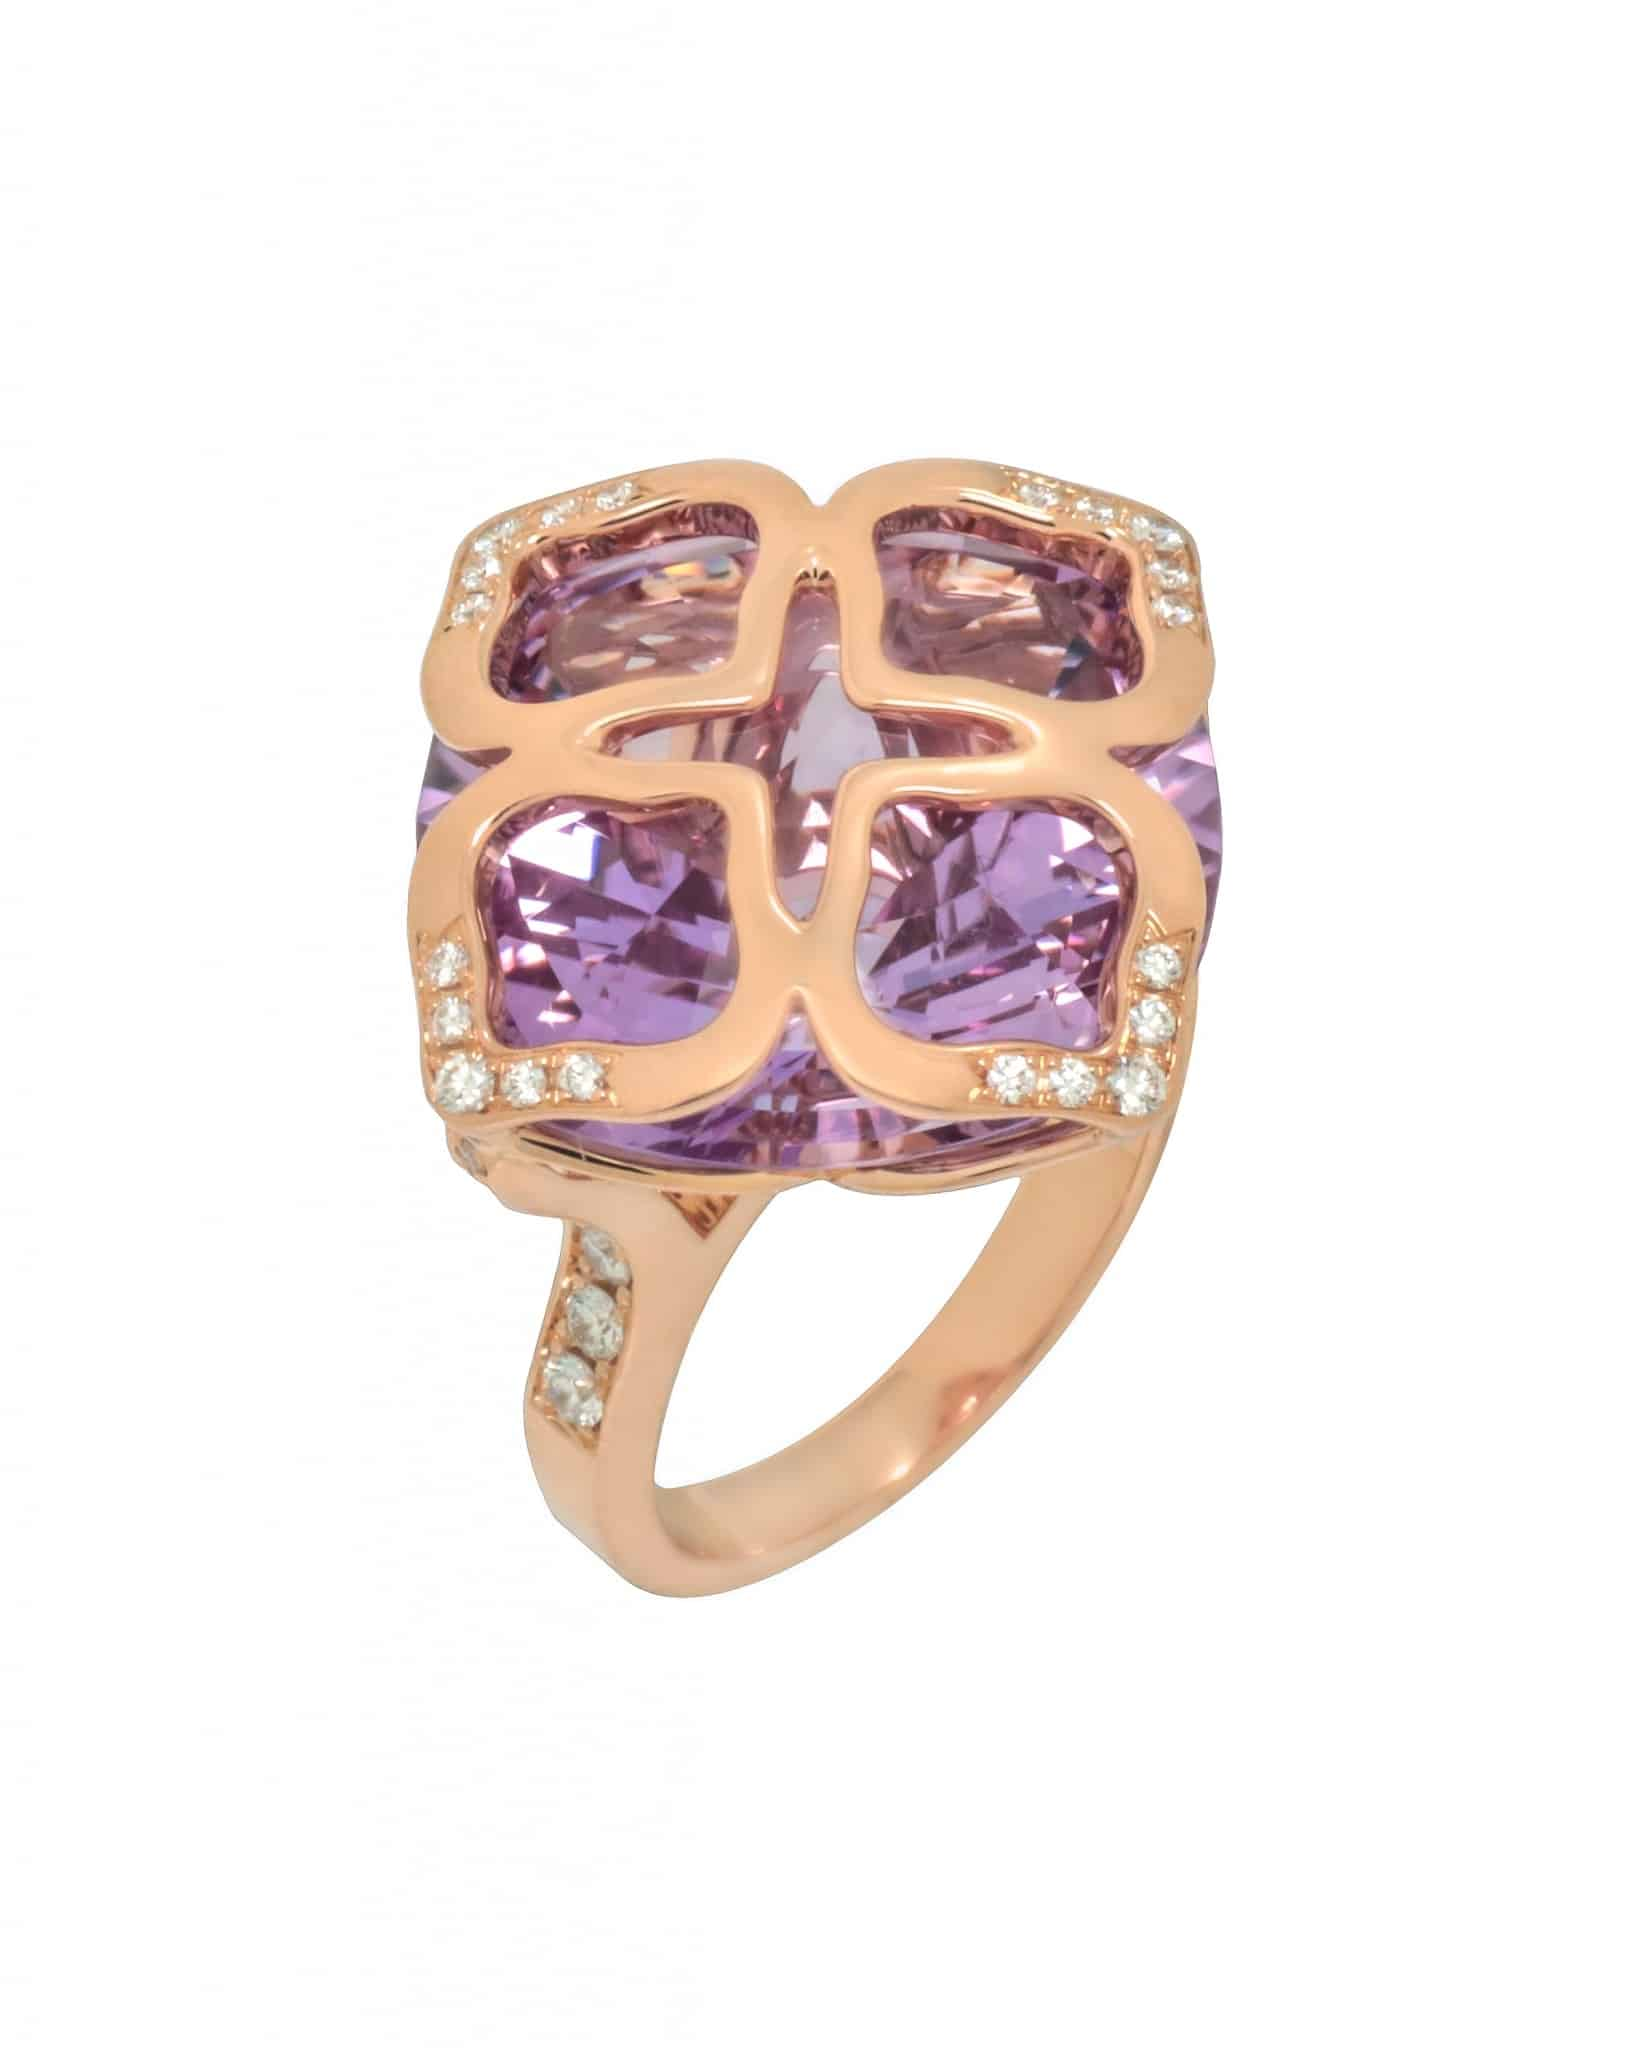 Chopard 18K Rose Gold Purple Amethyst and Diamond Ring – Size 6.25 829563-5010